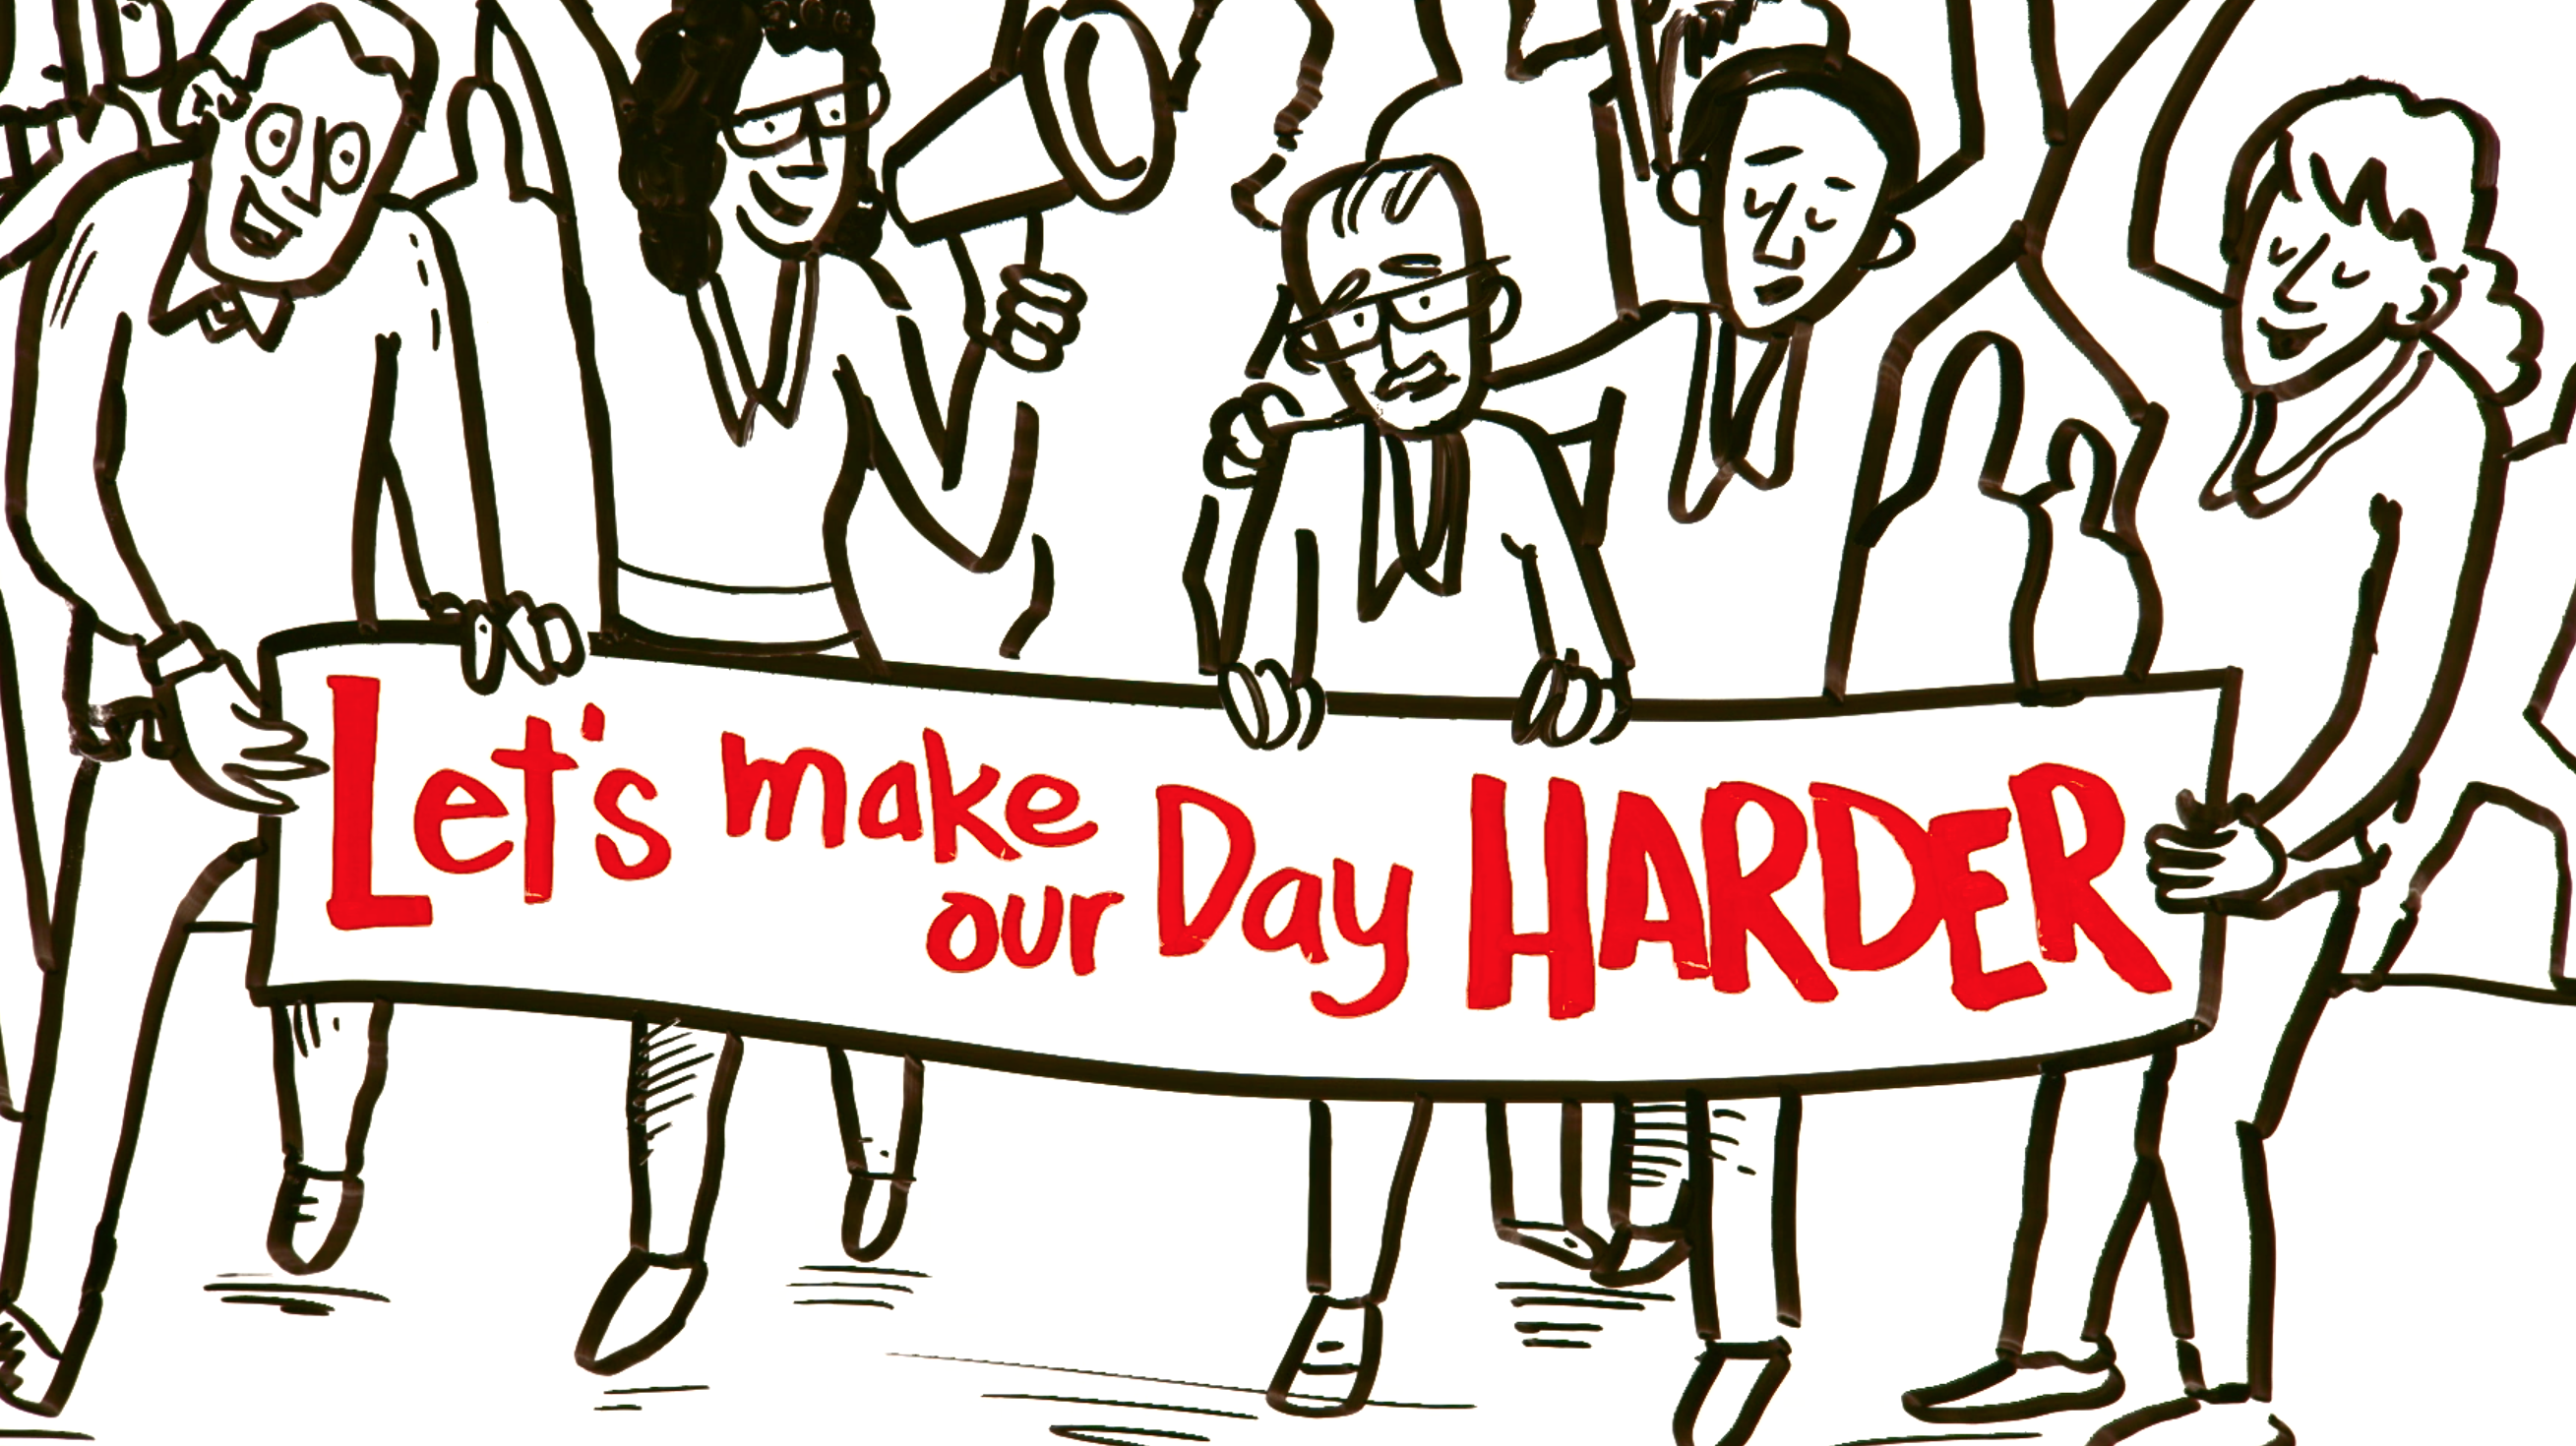 A Call to Action: Make Your Day Harder